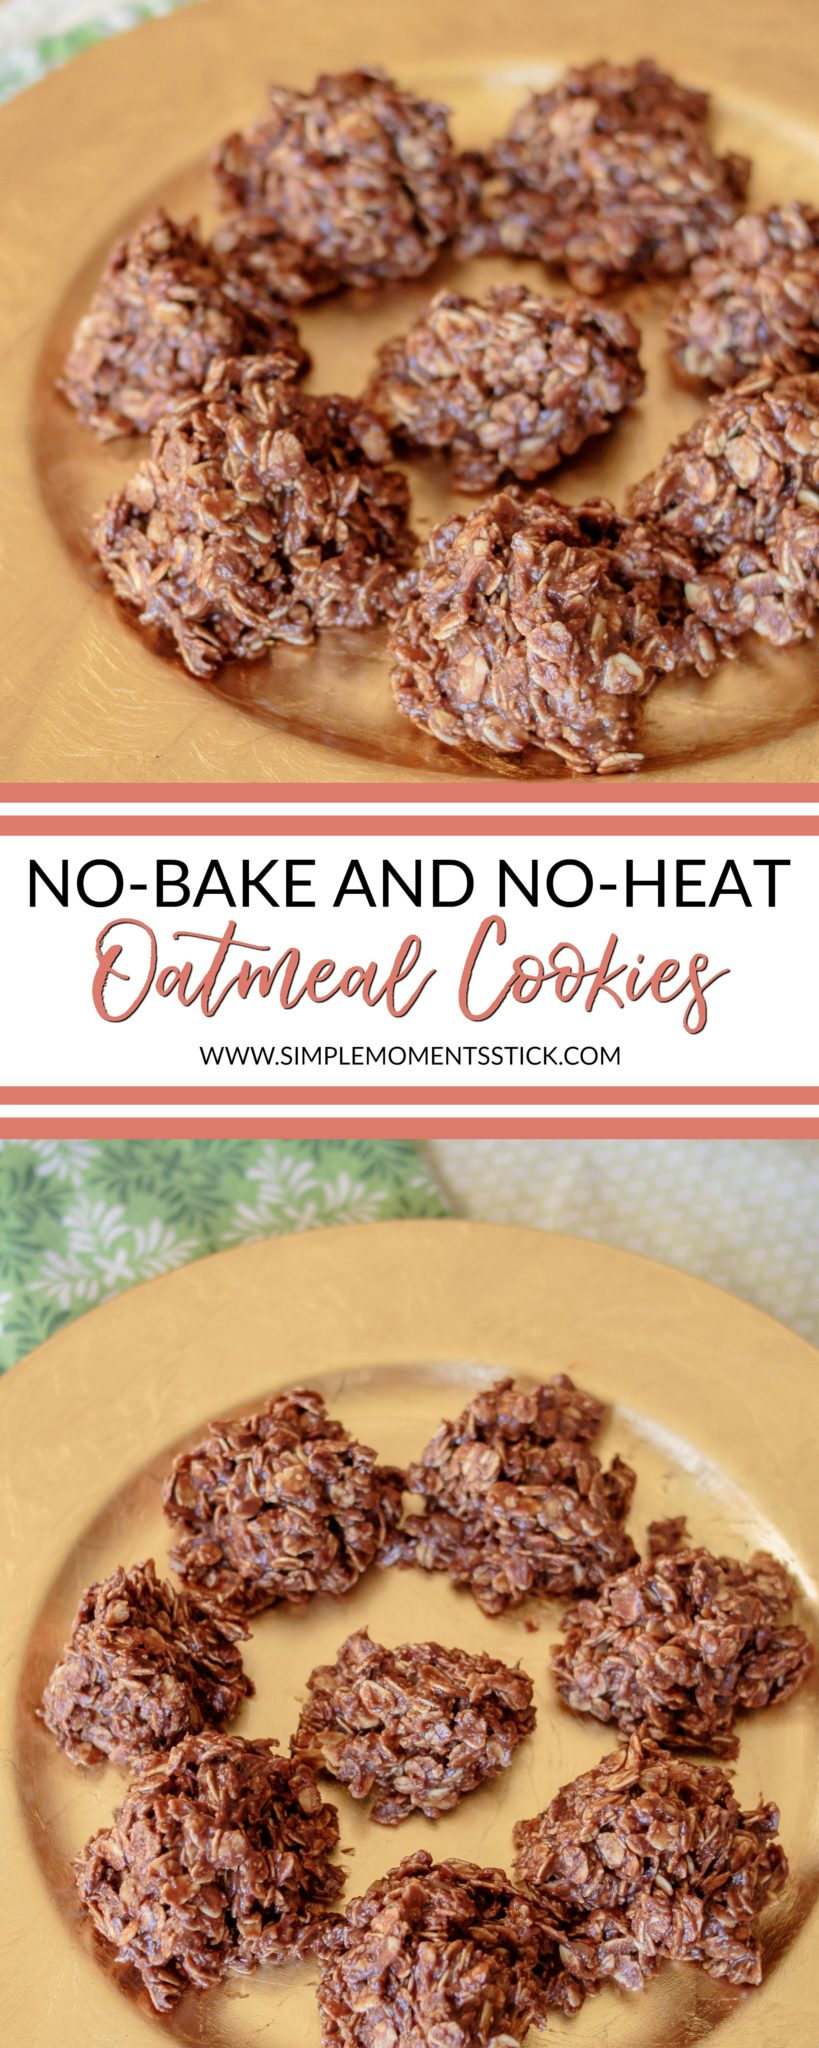 No-Bake and No-Heat Cookies #nobake #noheat #cookies #recipe #nobakecookies #cookierecipe